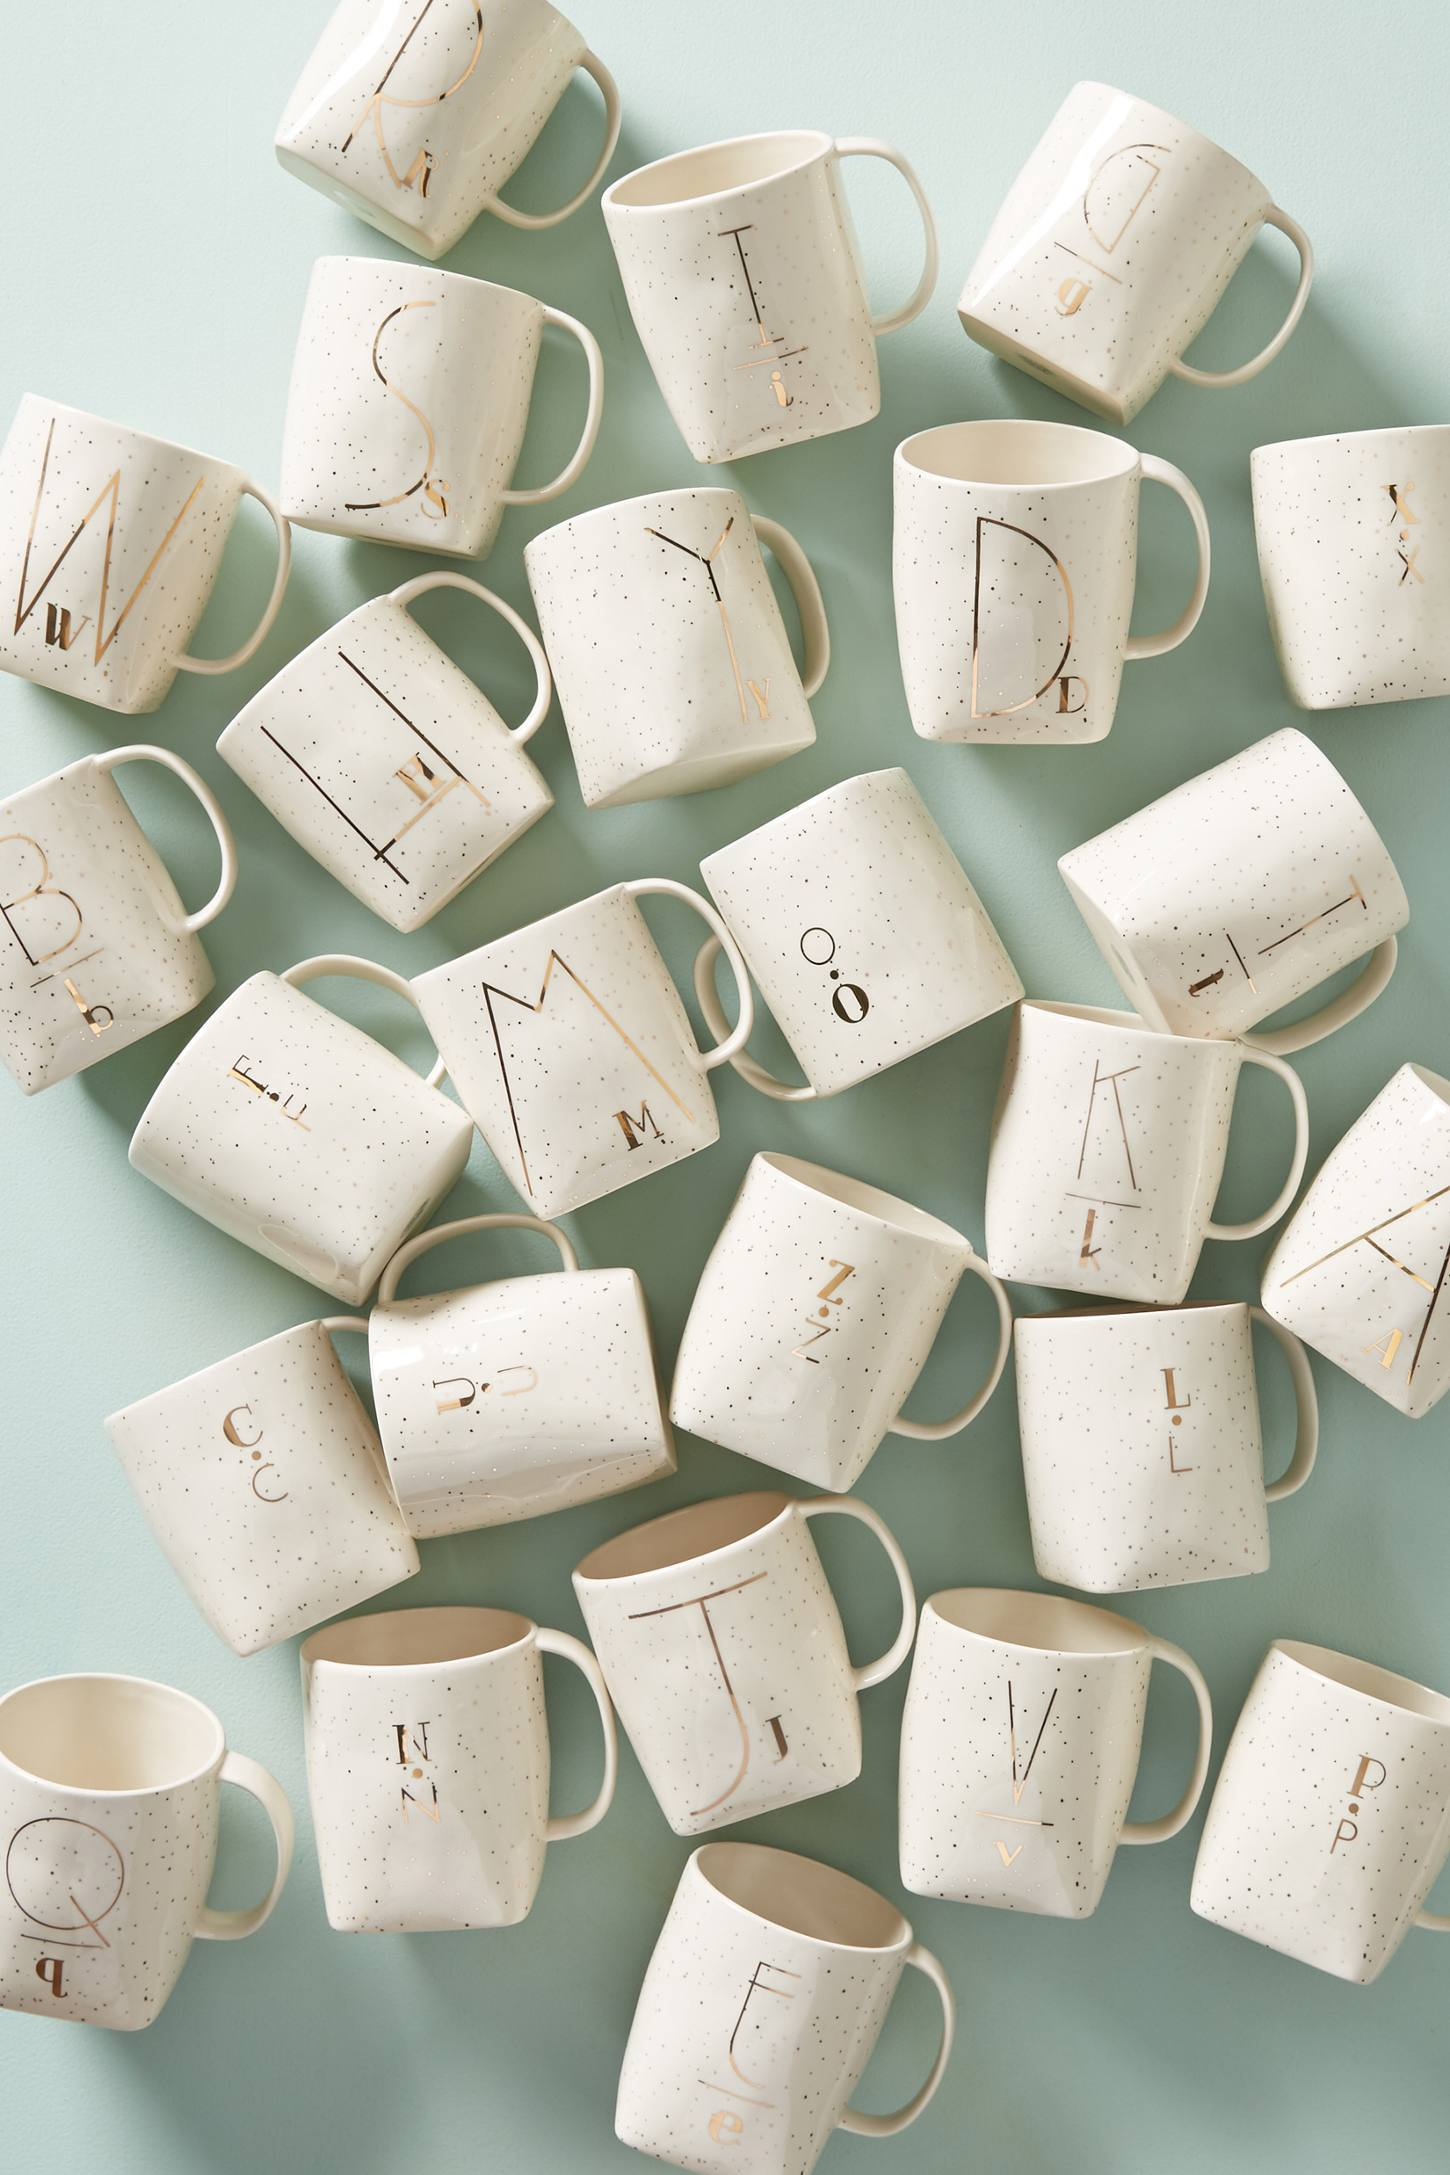 Slide View: 2: Double Monogram Mug